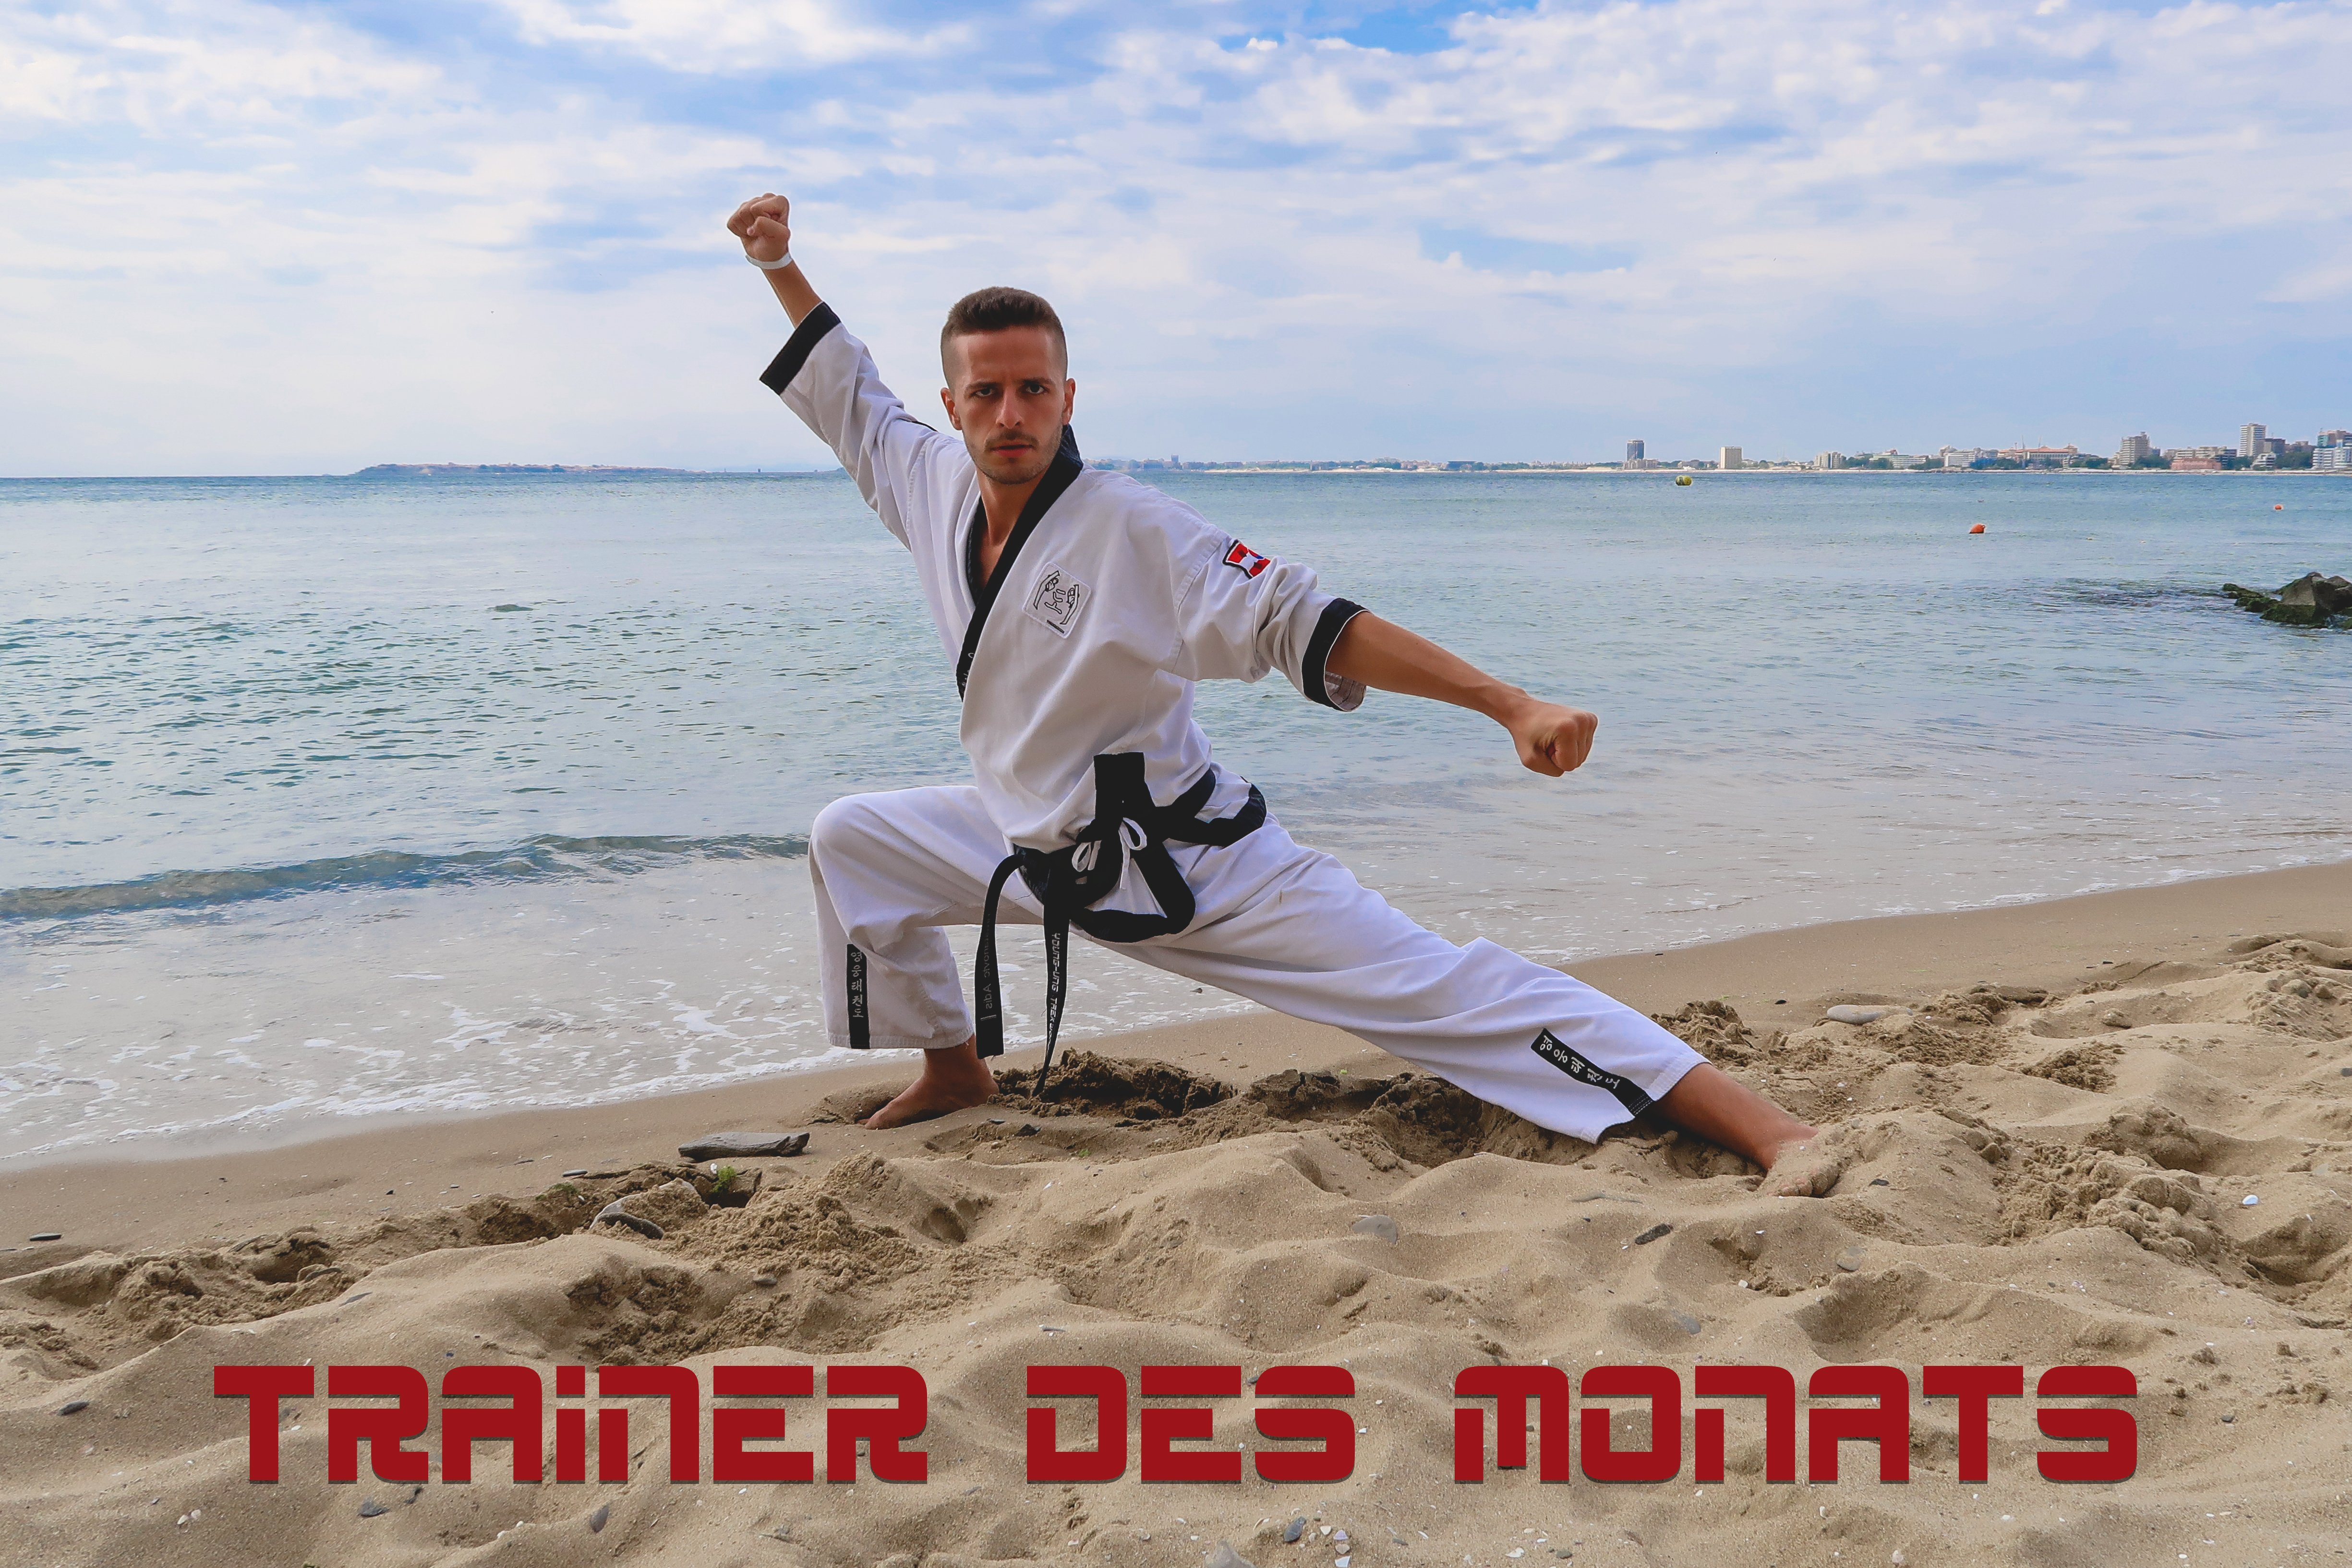 YOUNG-UNG Taekwondo Kampfsport Trainer des Monats